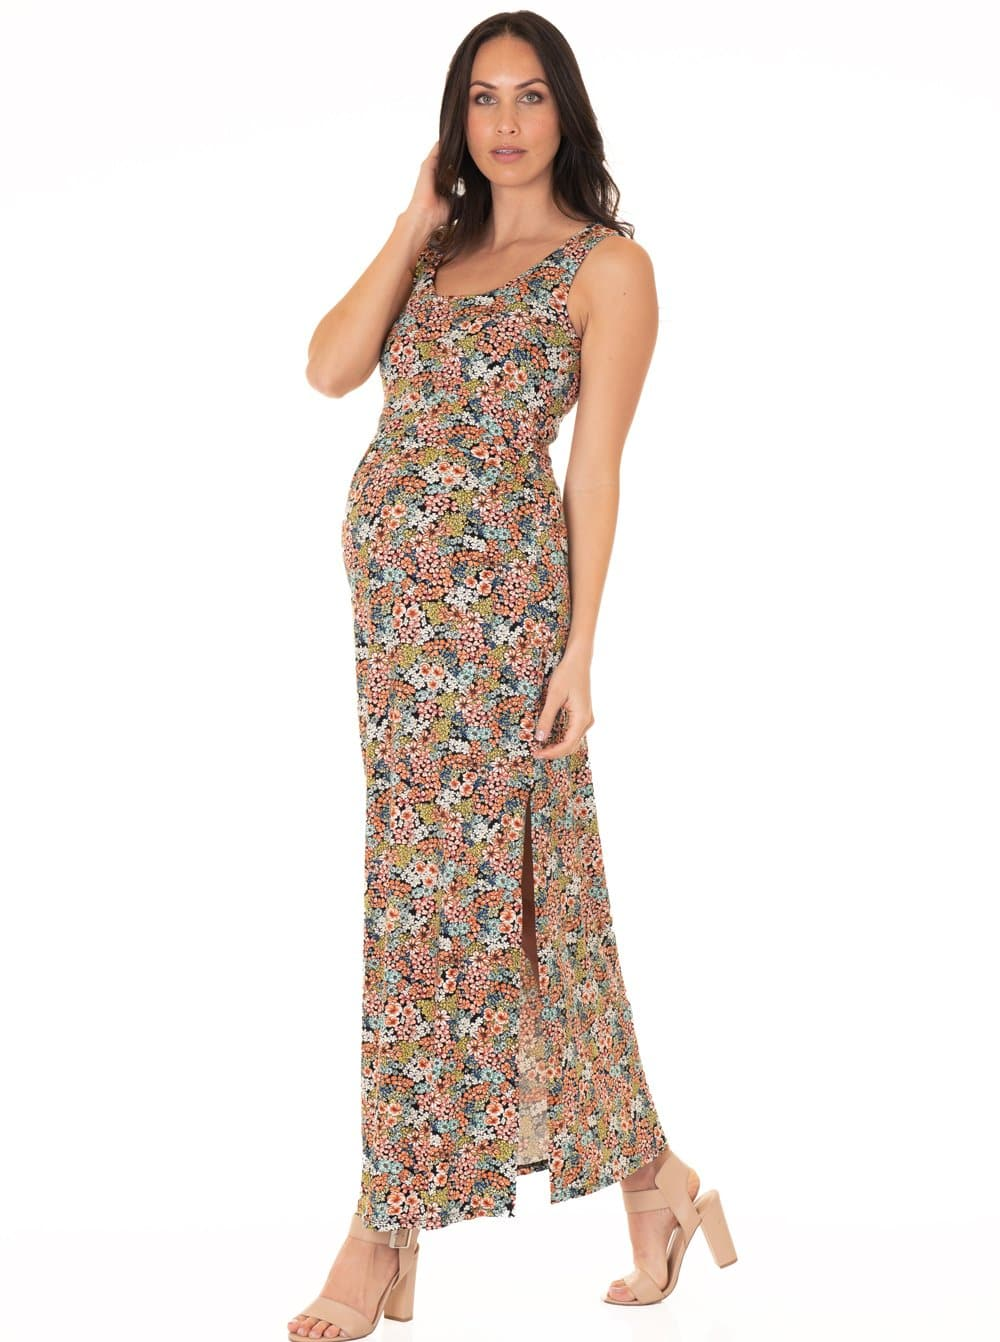 nursing summer long dress